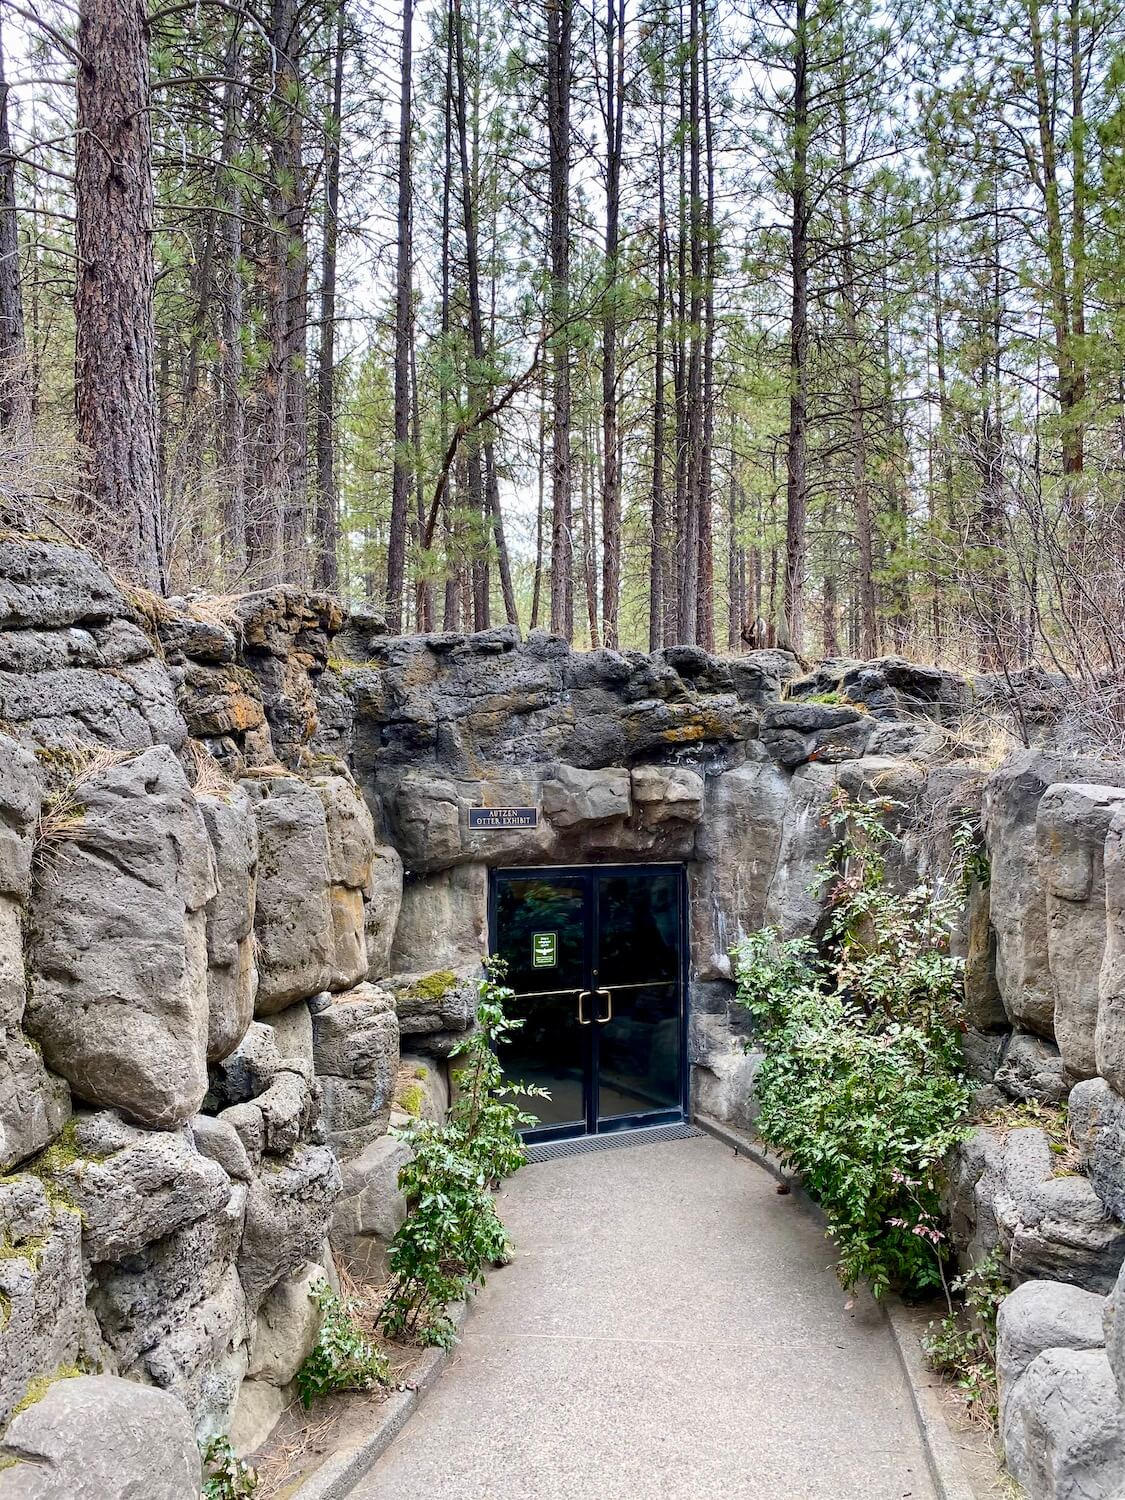 The entrance to the Otter exhibit at the High Desert Museum in Bend, Oregon is buried amongst large boulders set underneath a forest of young ponderosa pine trees.